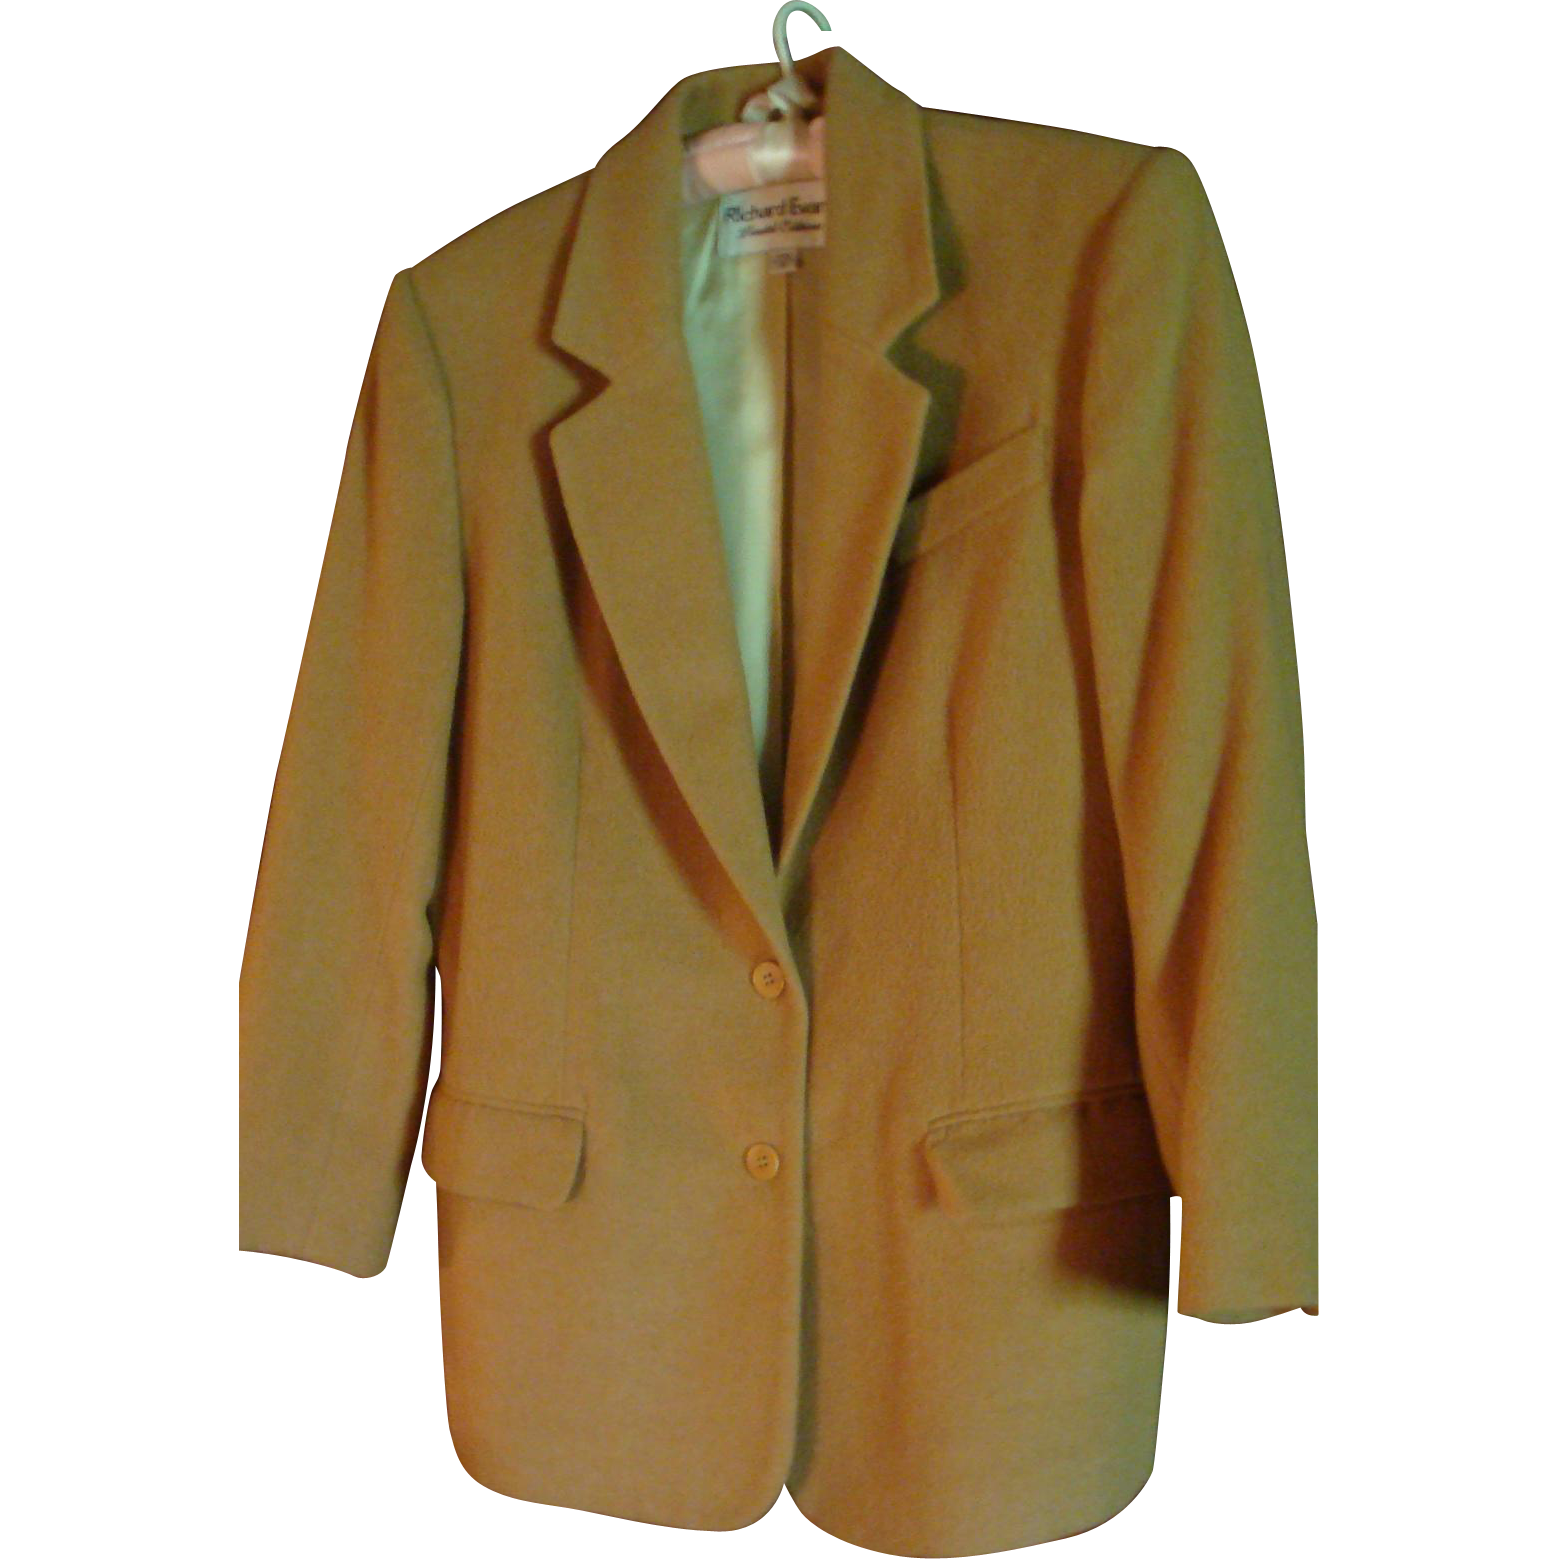 Vintage Classic Richard Evans Limited Edition 100% Camel's Hair Jacket Size 10 Blazer Coat